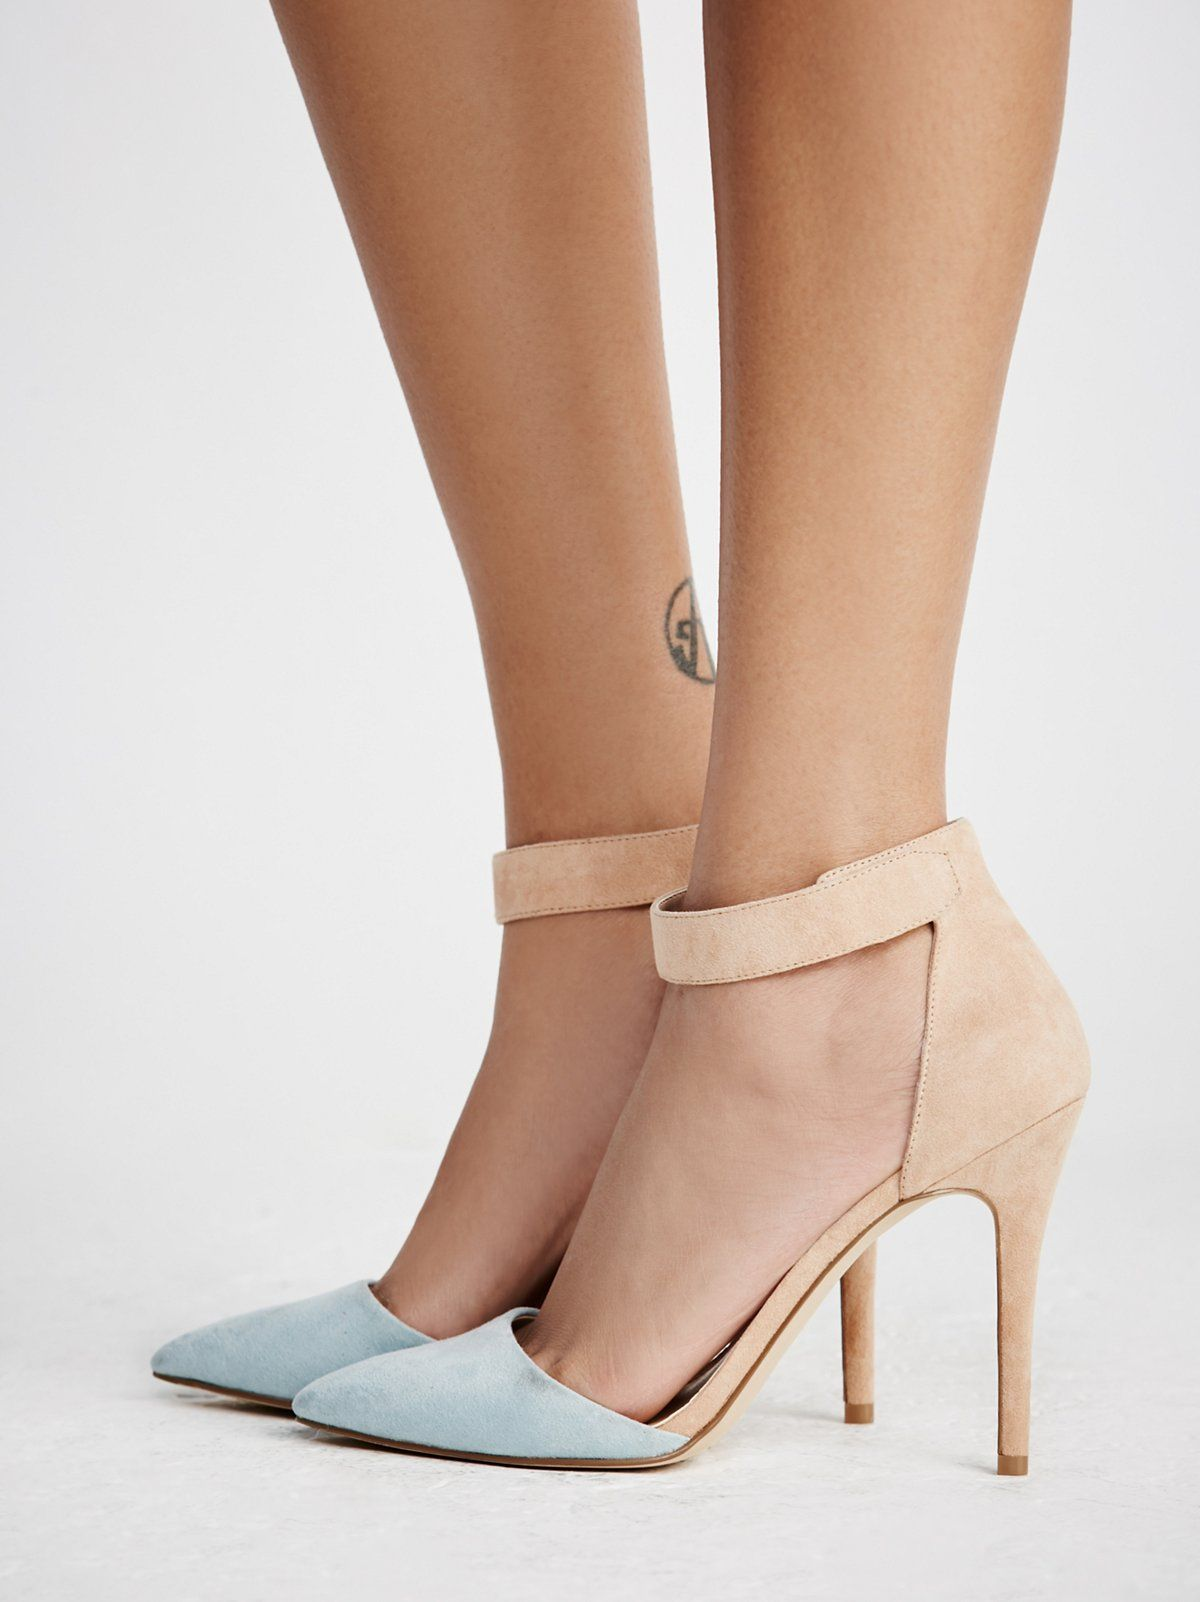 keep slipping straps header detachable comfortable or pages why for landing ginger stretched shoes improve fit loose stilettos attachable from out off ankle shoe comforter